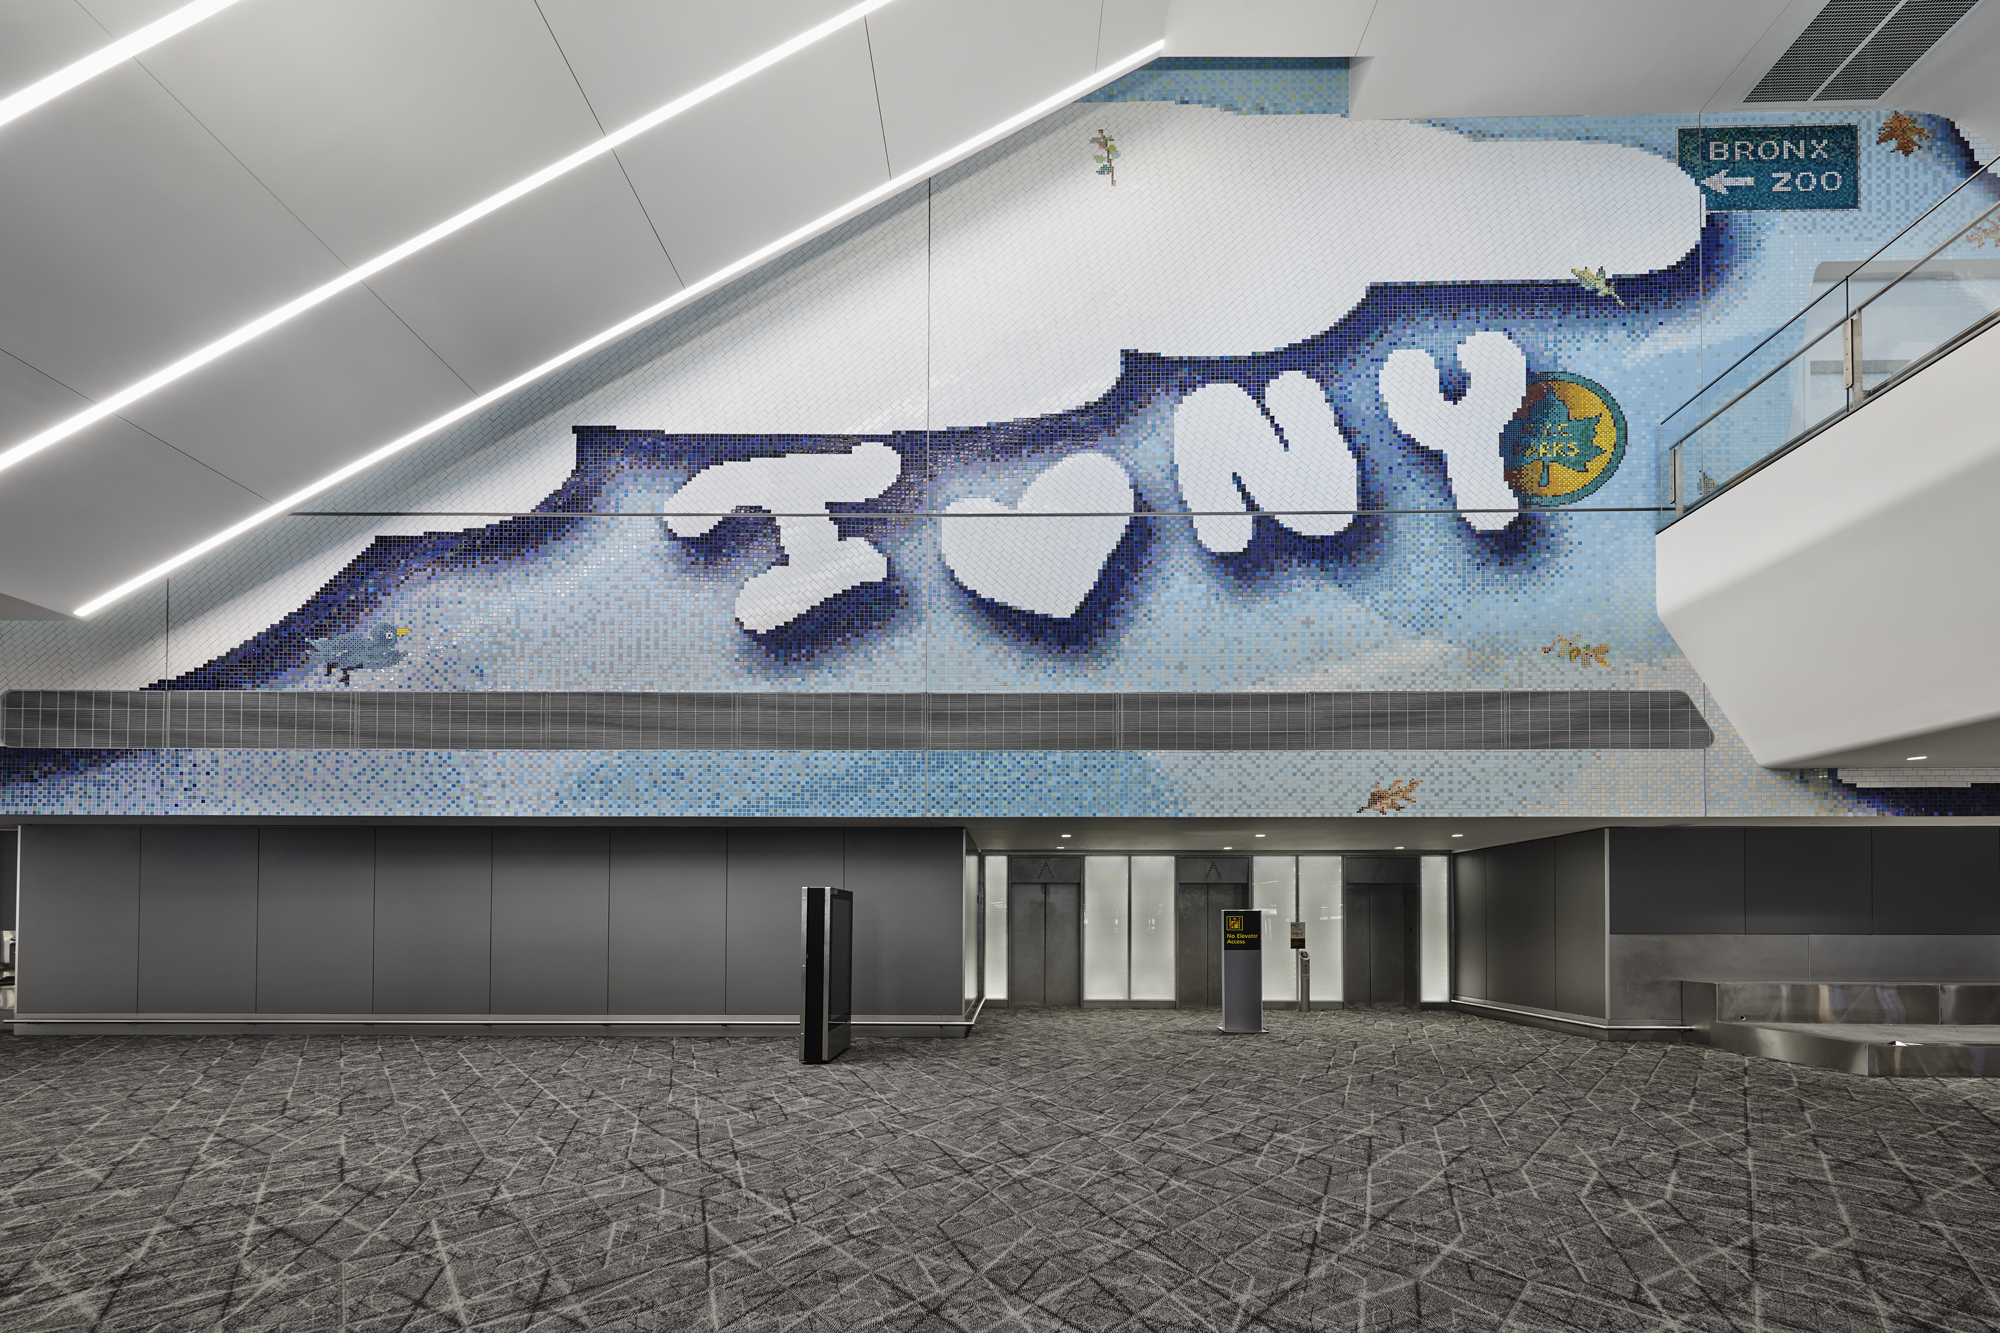 """Laura Owens, """"I [pizza emoji] NY,"""" 2020. Handmade glazed ceramic tiles and grout. Commissioned by LaGuardia Gateway Partners in partnership with Public Art Fund for LaGuardia Airport's Terminal B. Courtesy of the artist; Gavin Brown's Enterprise, New York, Rome; Sadie Coles HQ, London; and Galerie Gisela Capitan, Cologne. Photo: Tom Powel Imaging"""